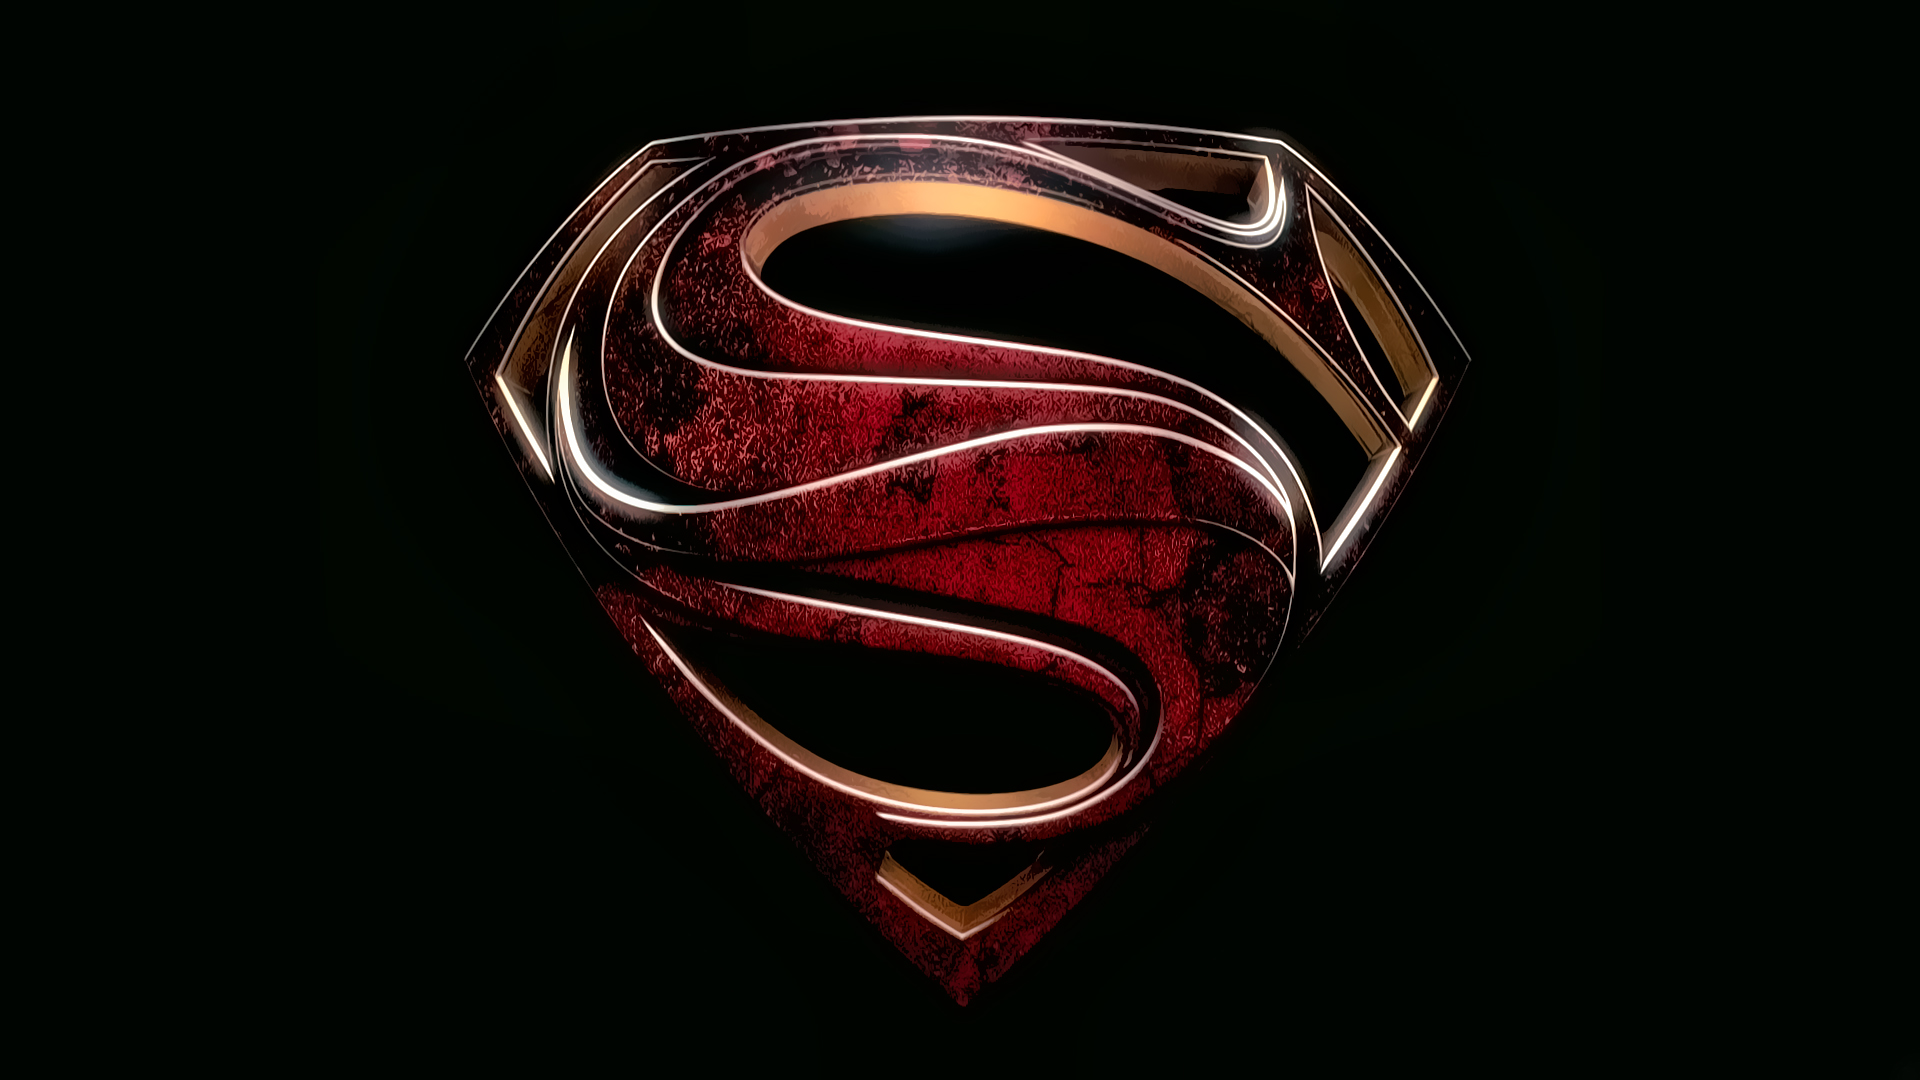 Superman the man of steel 2013 logo hd wallpaper - Man Of Steel Logo Wallpaper Hd Image And Save Image As Click Save Car